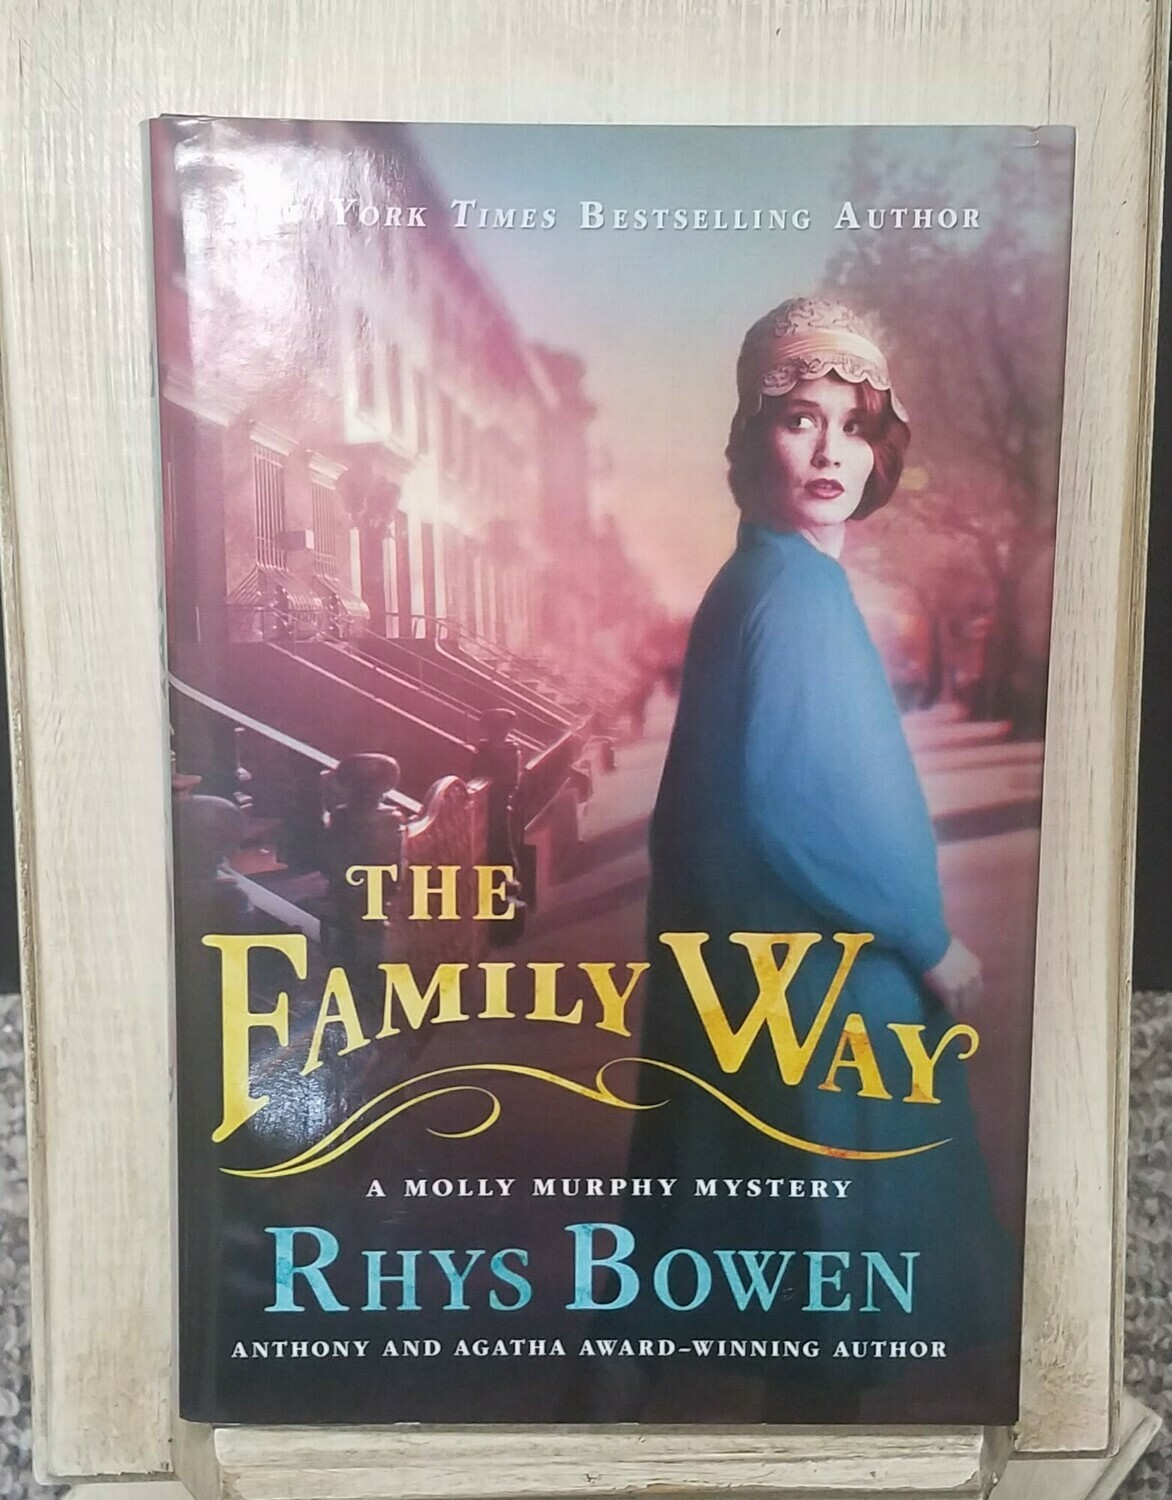 The Family Way by Rhys Bowen